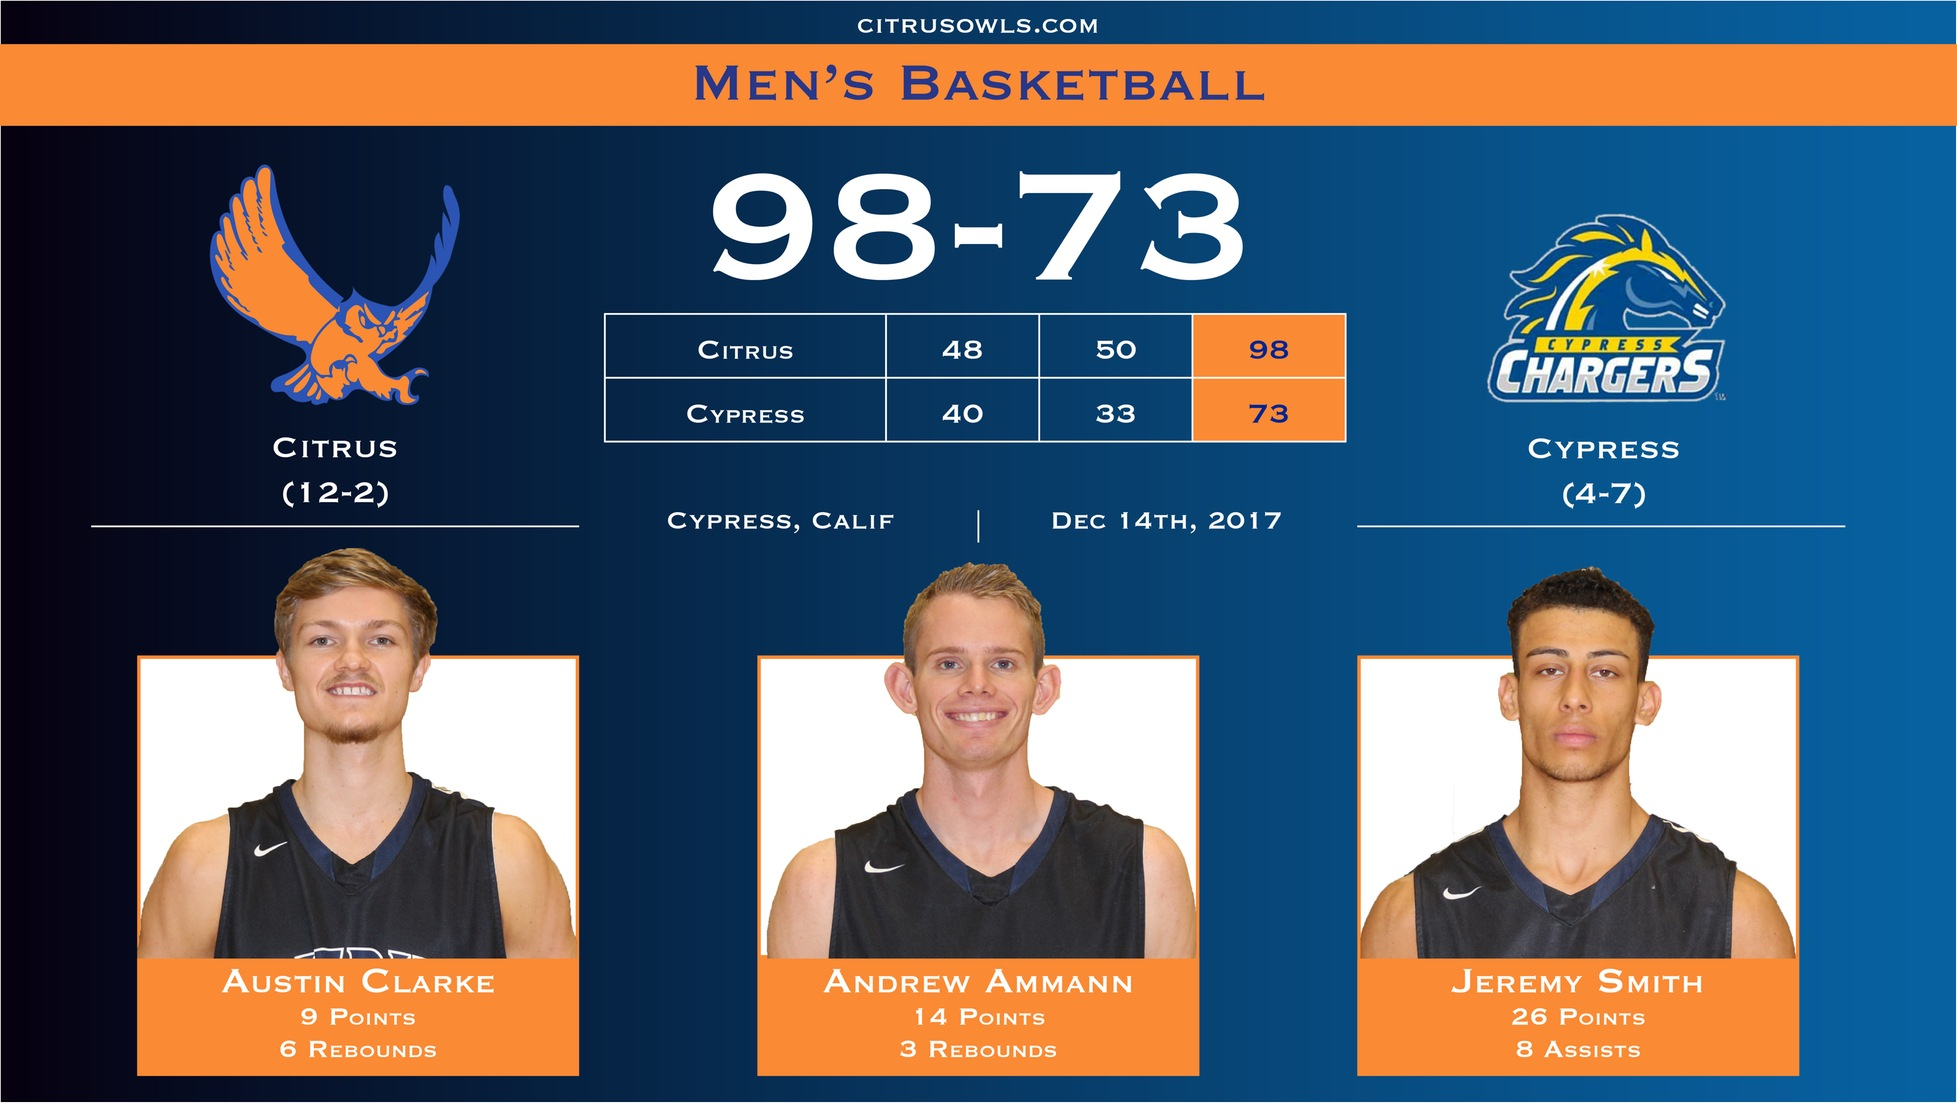 Citrus Men Win Ninth Straight in Blowout of Cypress